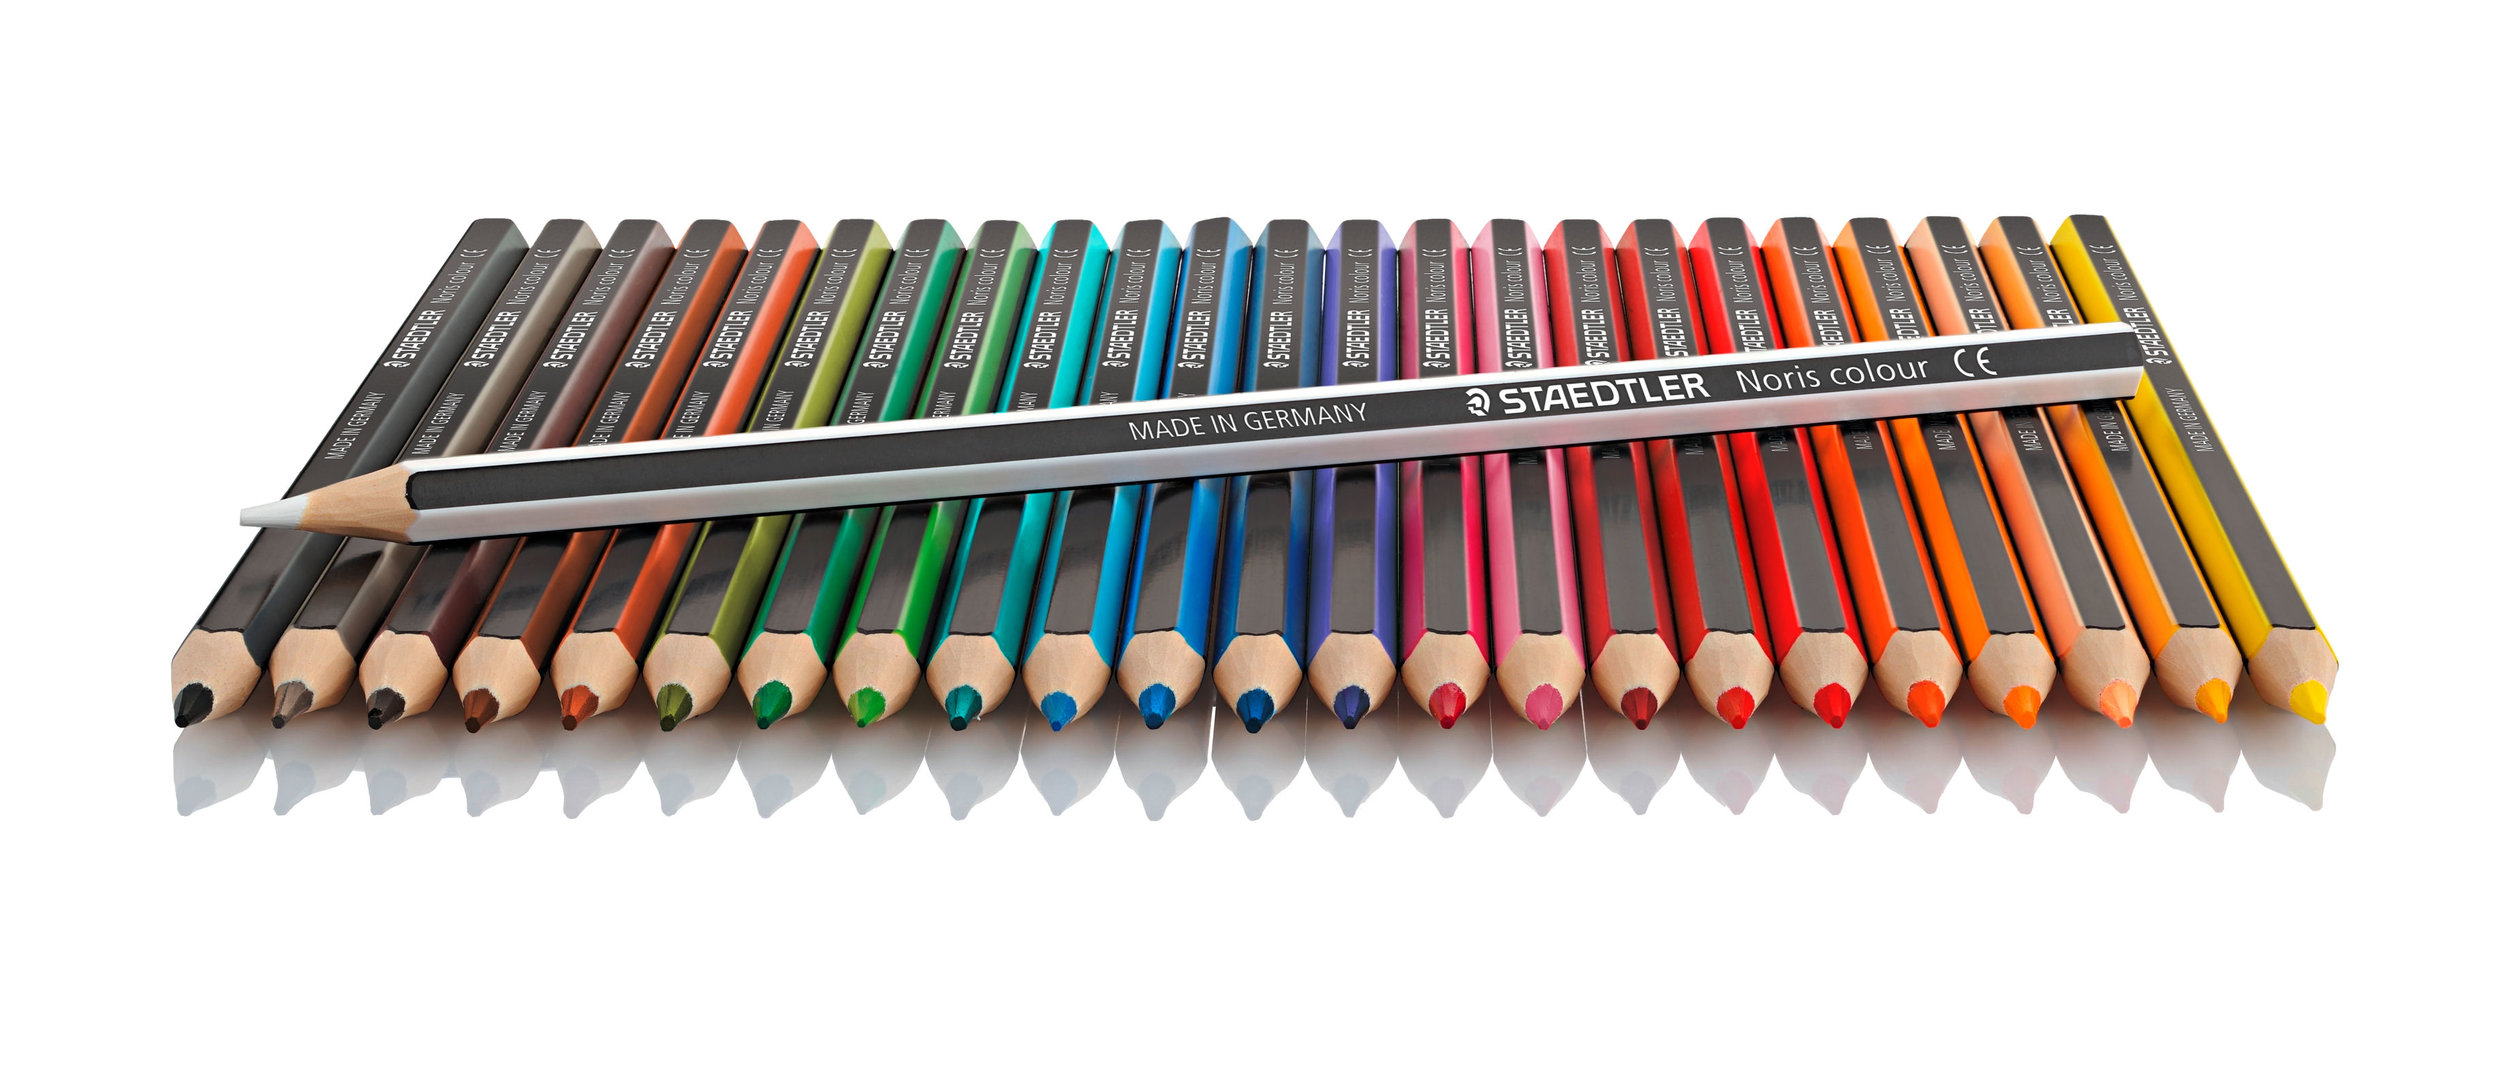 Staedtler Noris Coloured Colouring Pencils 185 C24 Set of 24 24x open pack.jpg